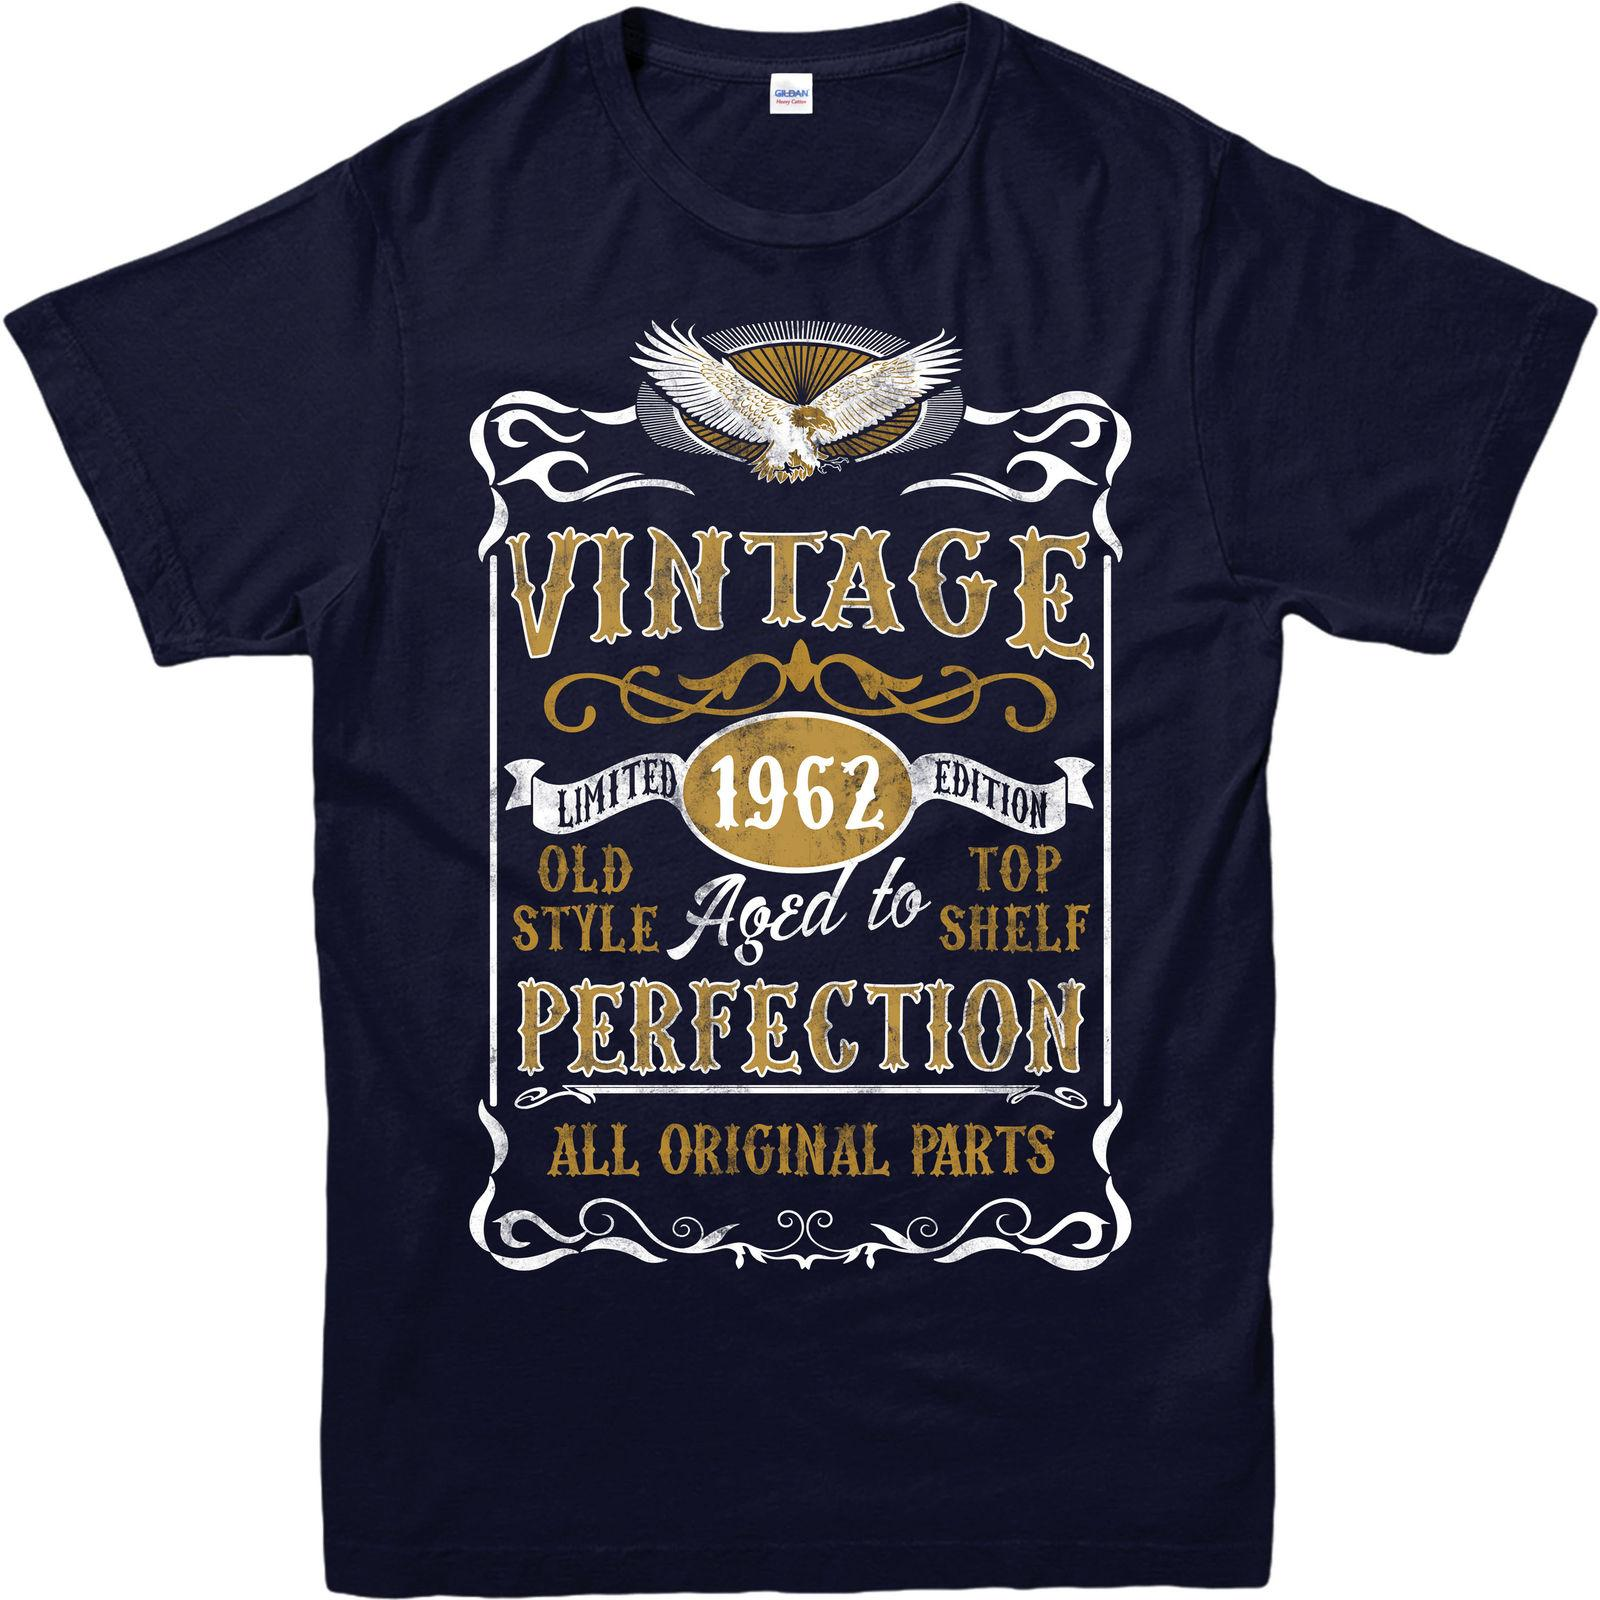 090c22c9c Made In 1962 Vintage T Shirt , Born 1962 Birthday Age Year Gift Top O Neck  Oversize Style Tee Shirts Styles Cartoon Character Cool T Shirts For Men  Cheap ...